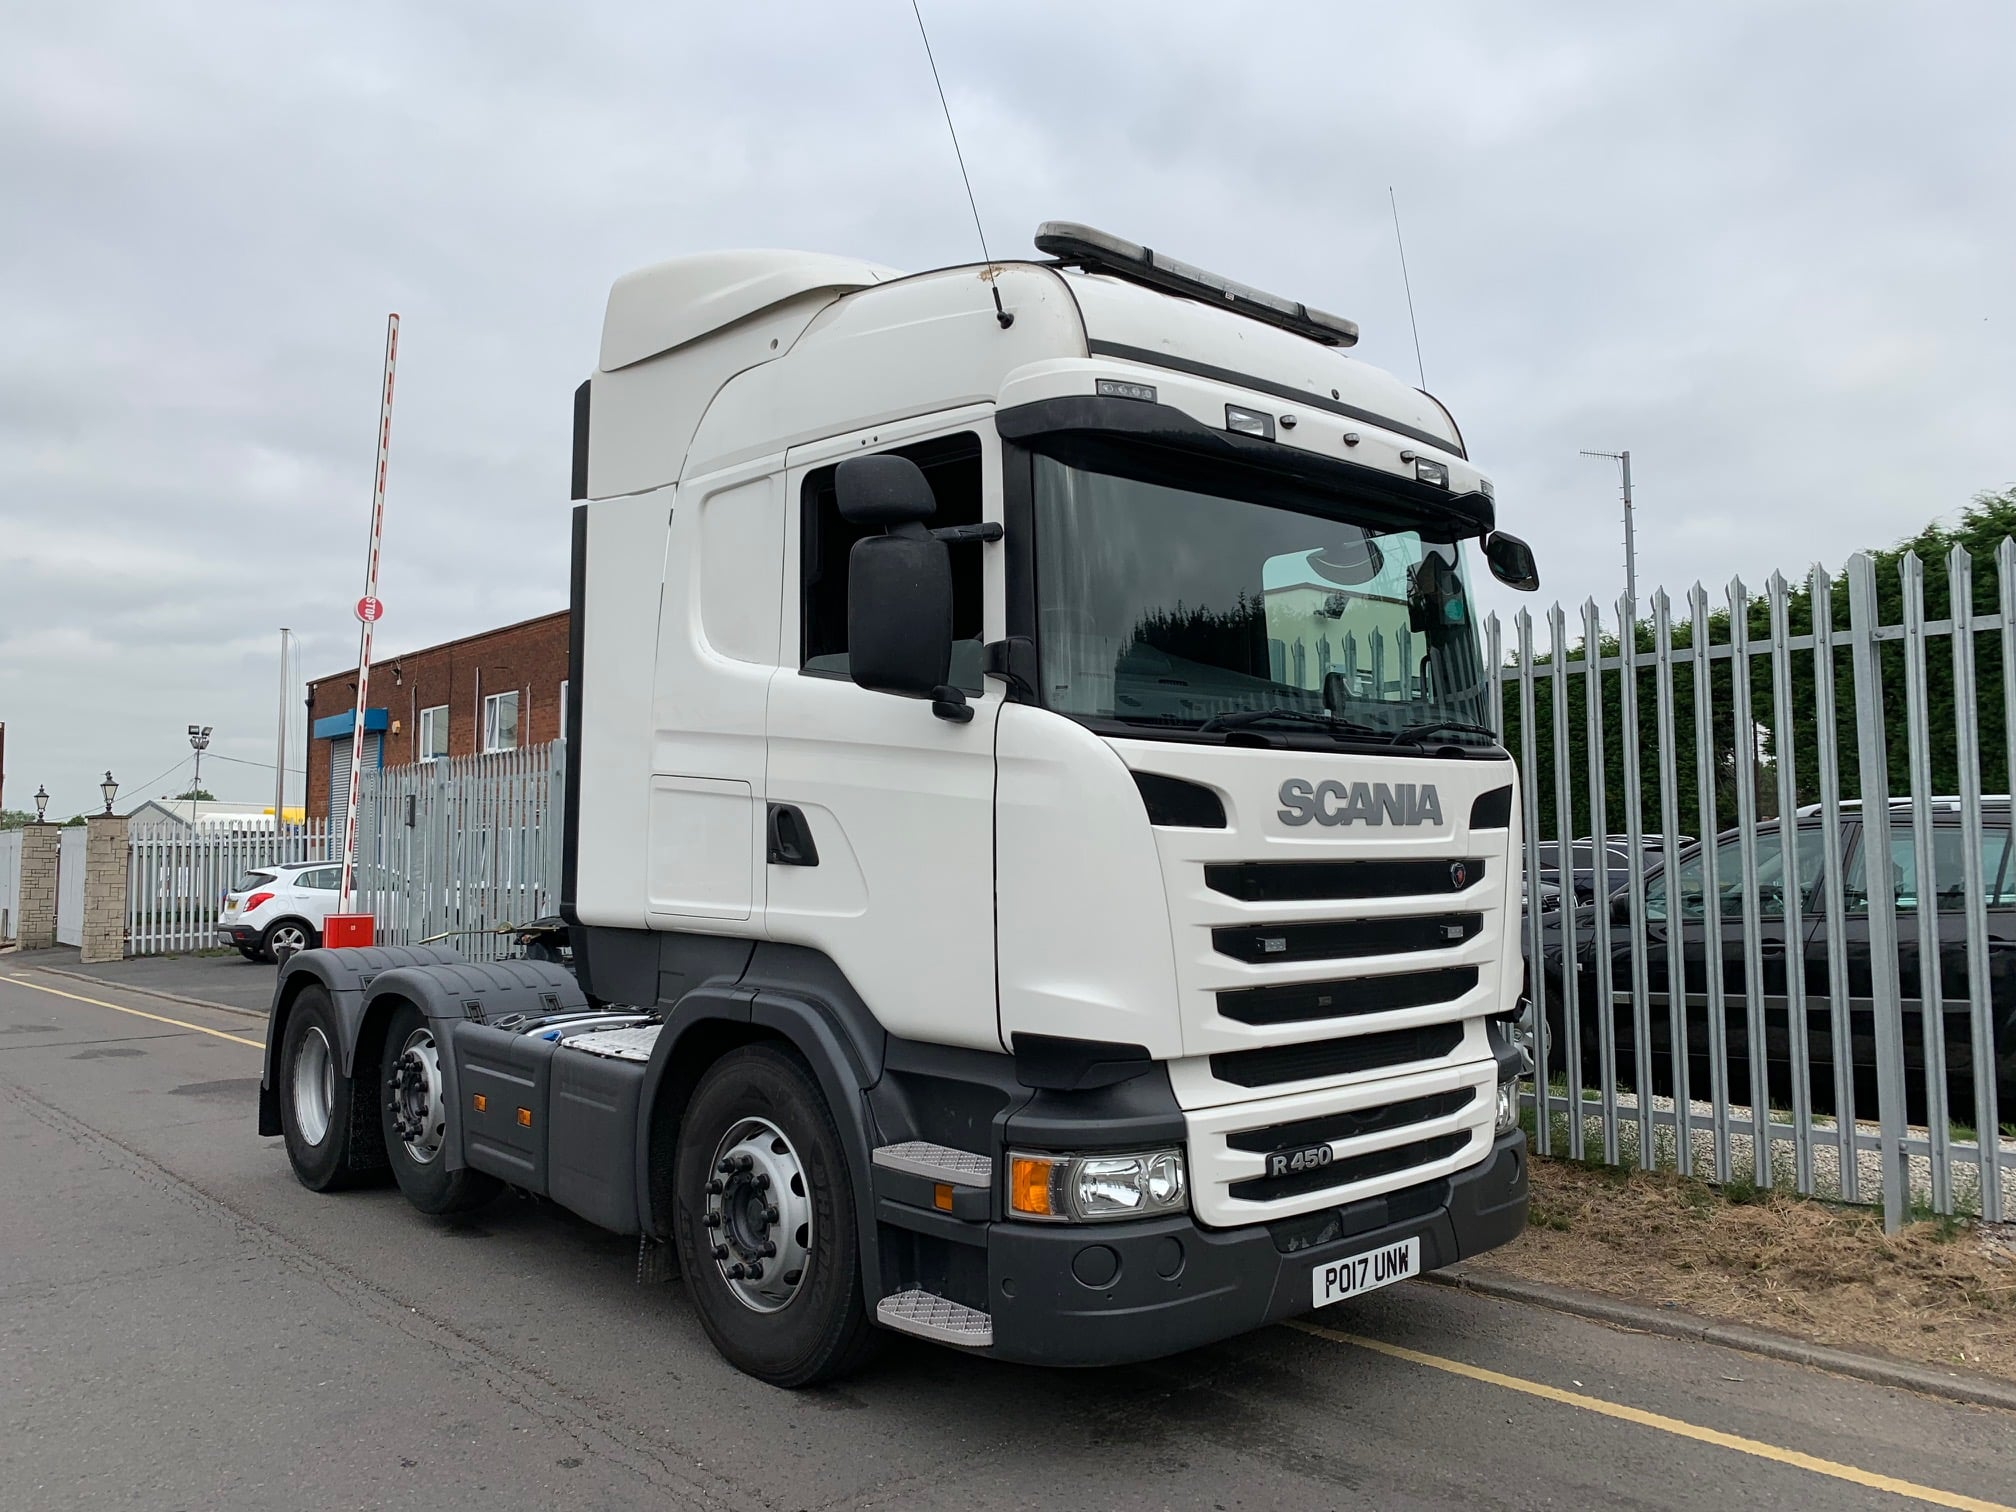 2017 Scania. Euro 6, 450bhp, Twin Sleeper Highline Cab, Opticruise Gearbox, FORs Camera System, Fridge, 07/20 MOT, Mid Lift Axle, Low KM's Choice Available.